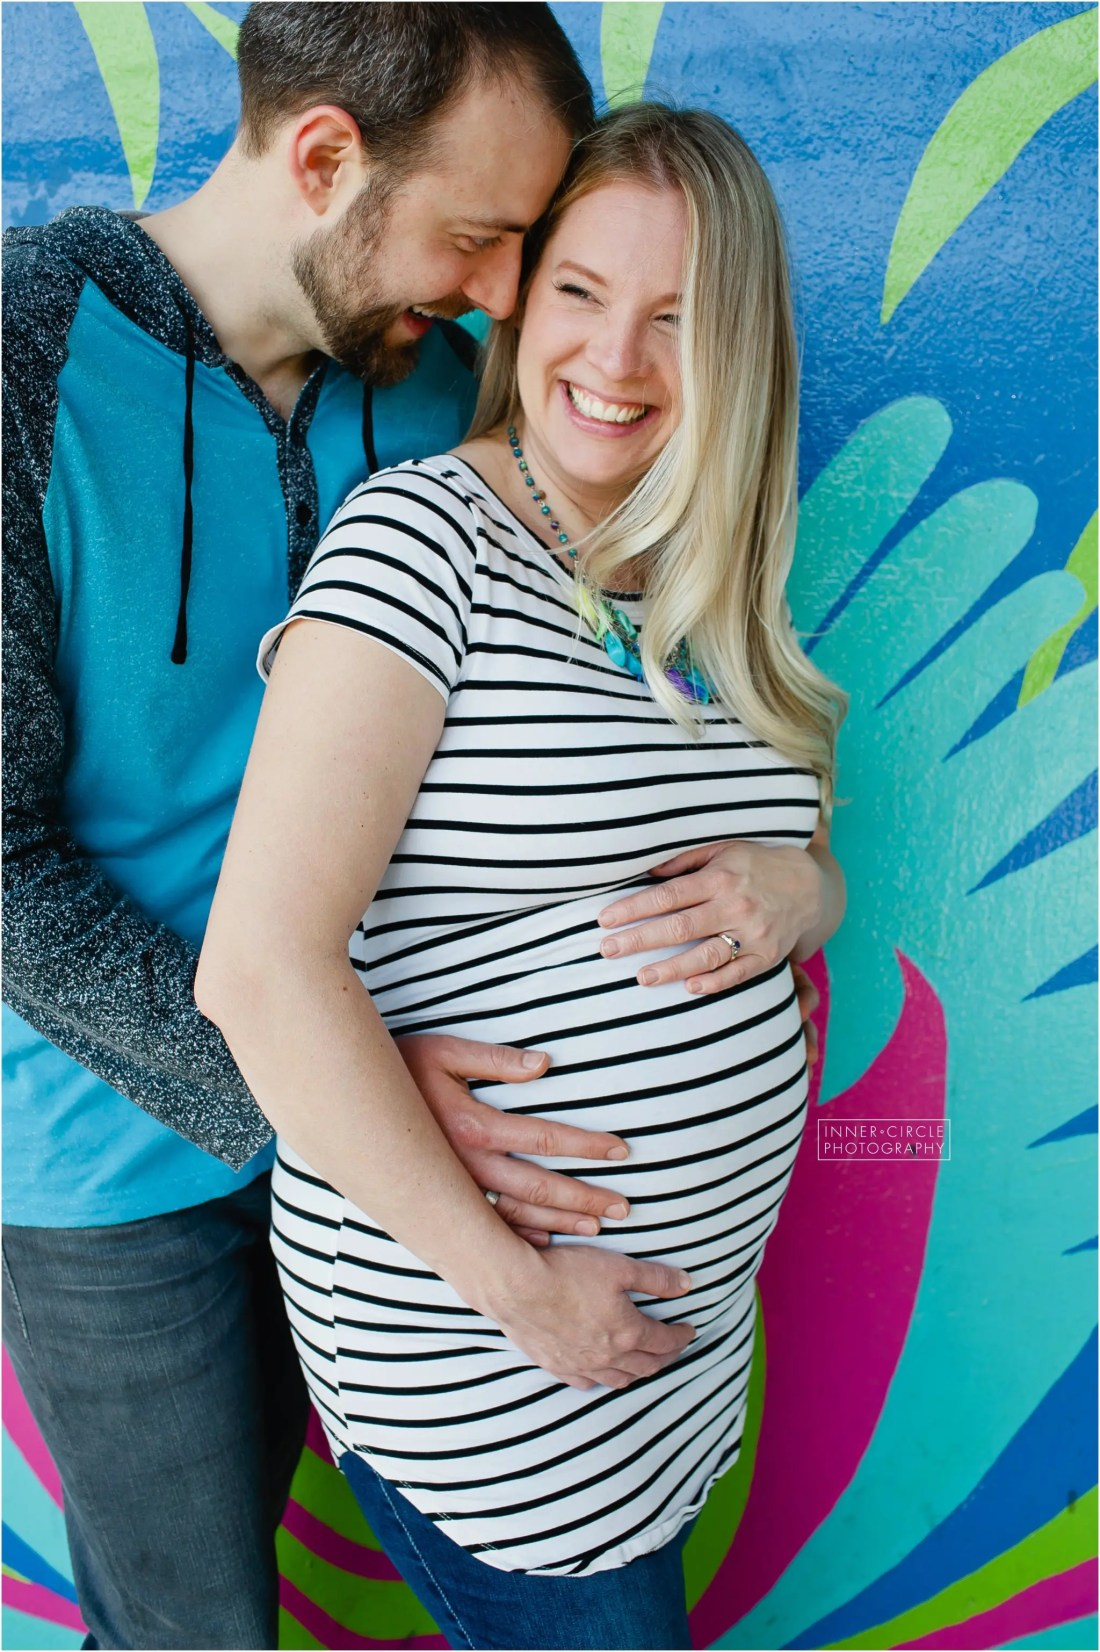 StephanieMATERNITY_2018_InnerCirclePhoto_026-1 Stephanie + Matt + Bump :: Chicago Maternity Photographer